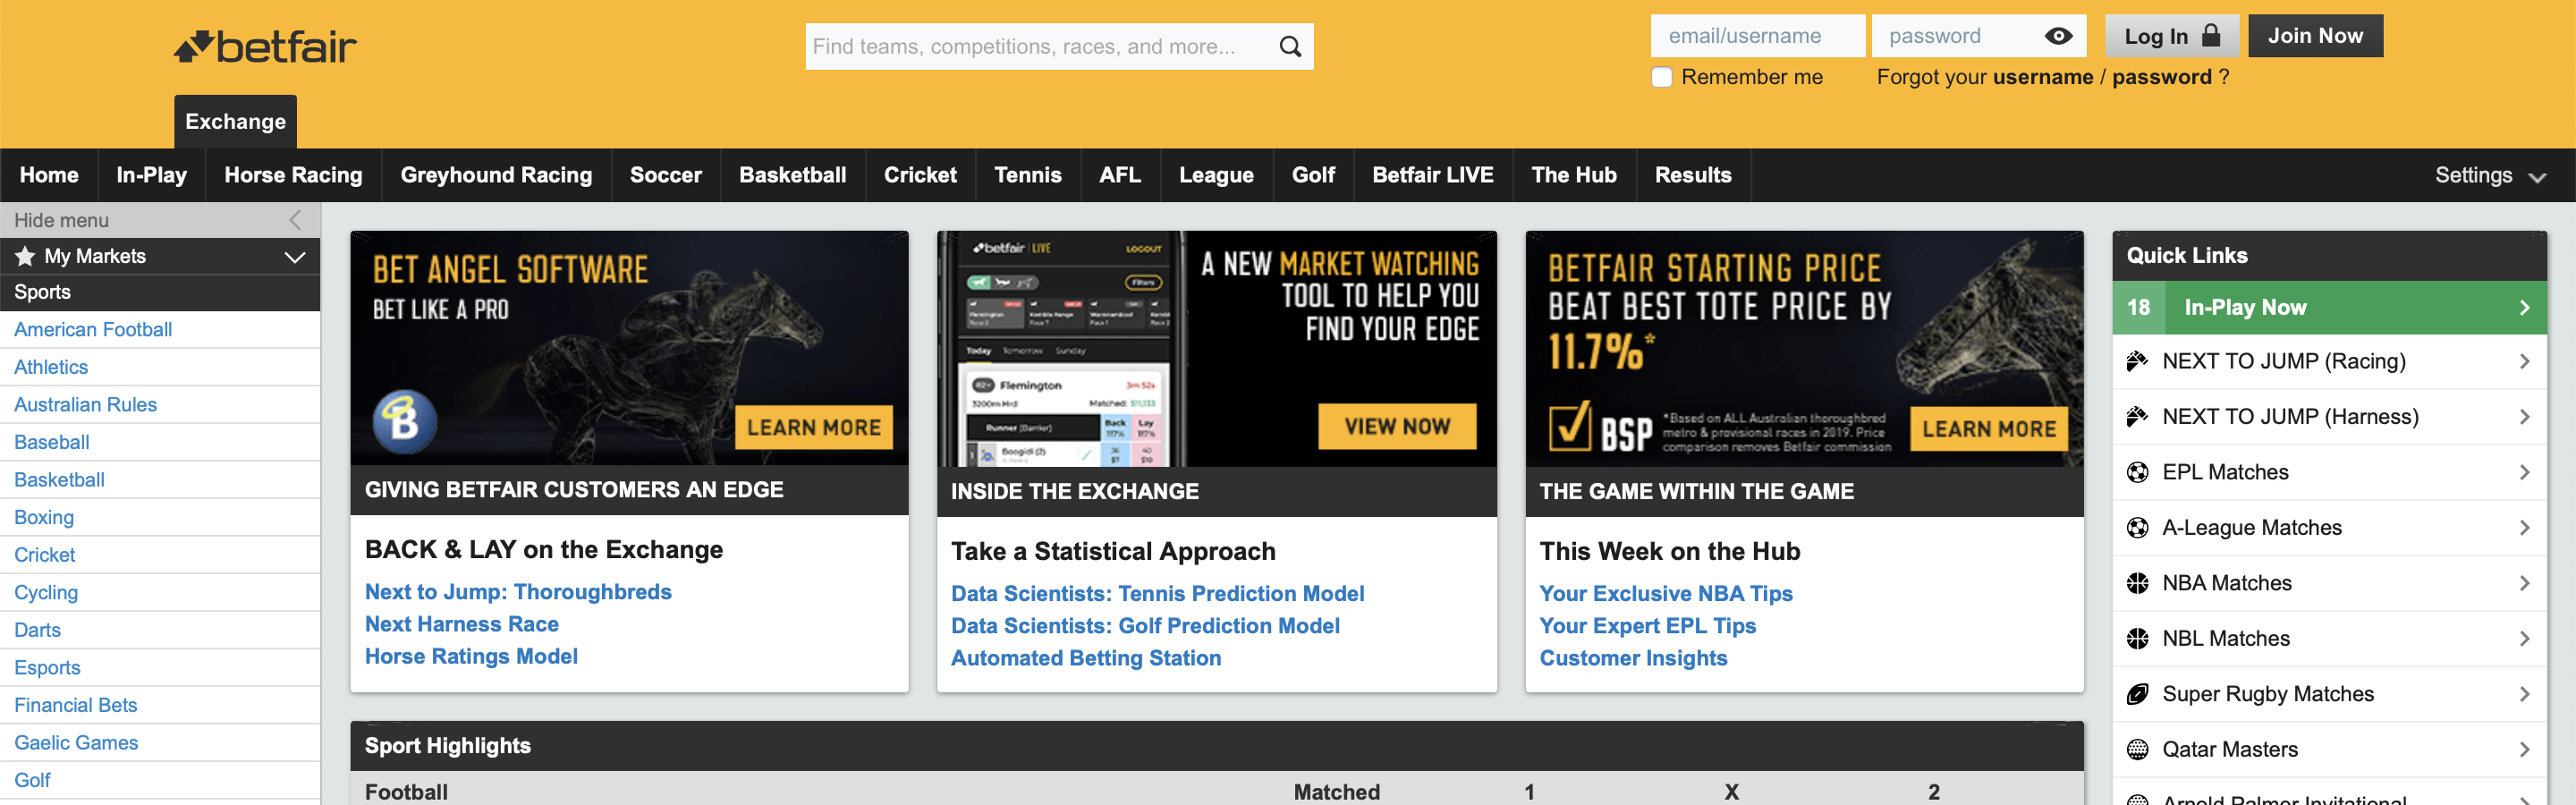 Betfair Homepage Interface